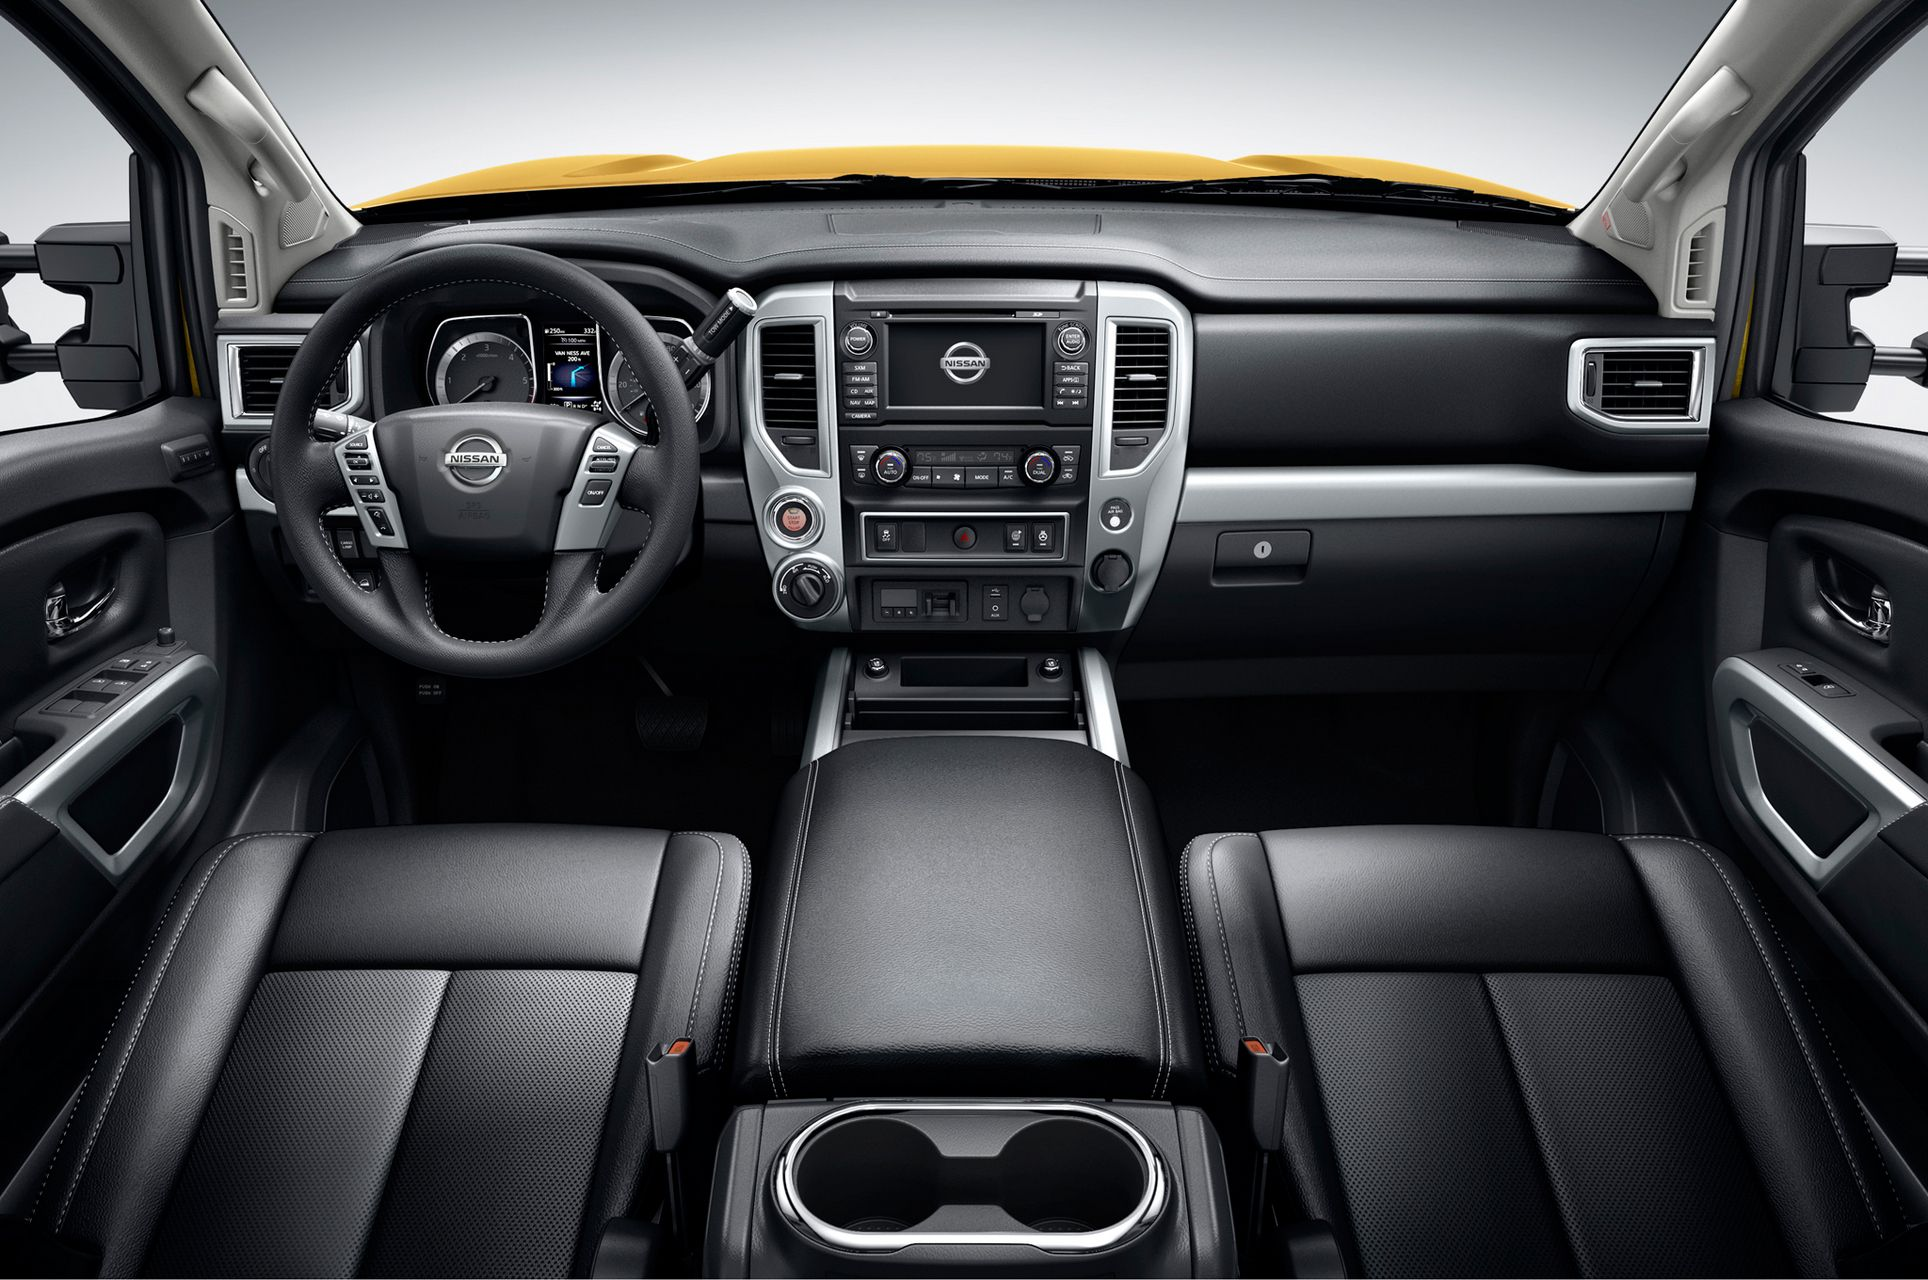 Nissan Frontier 2016 An Xd Suv Reviews Ford Ranger Interior Photo